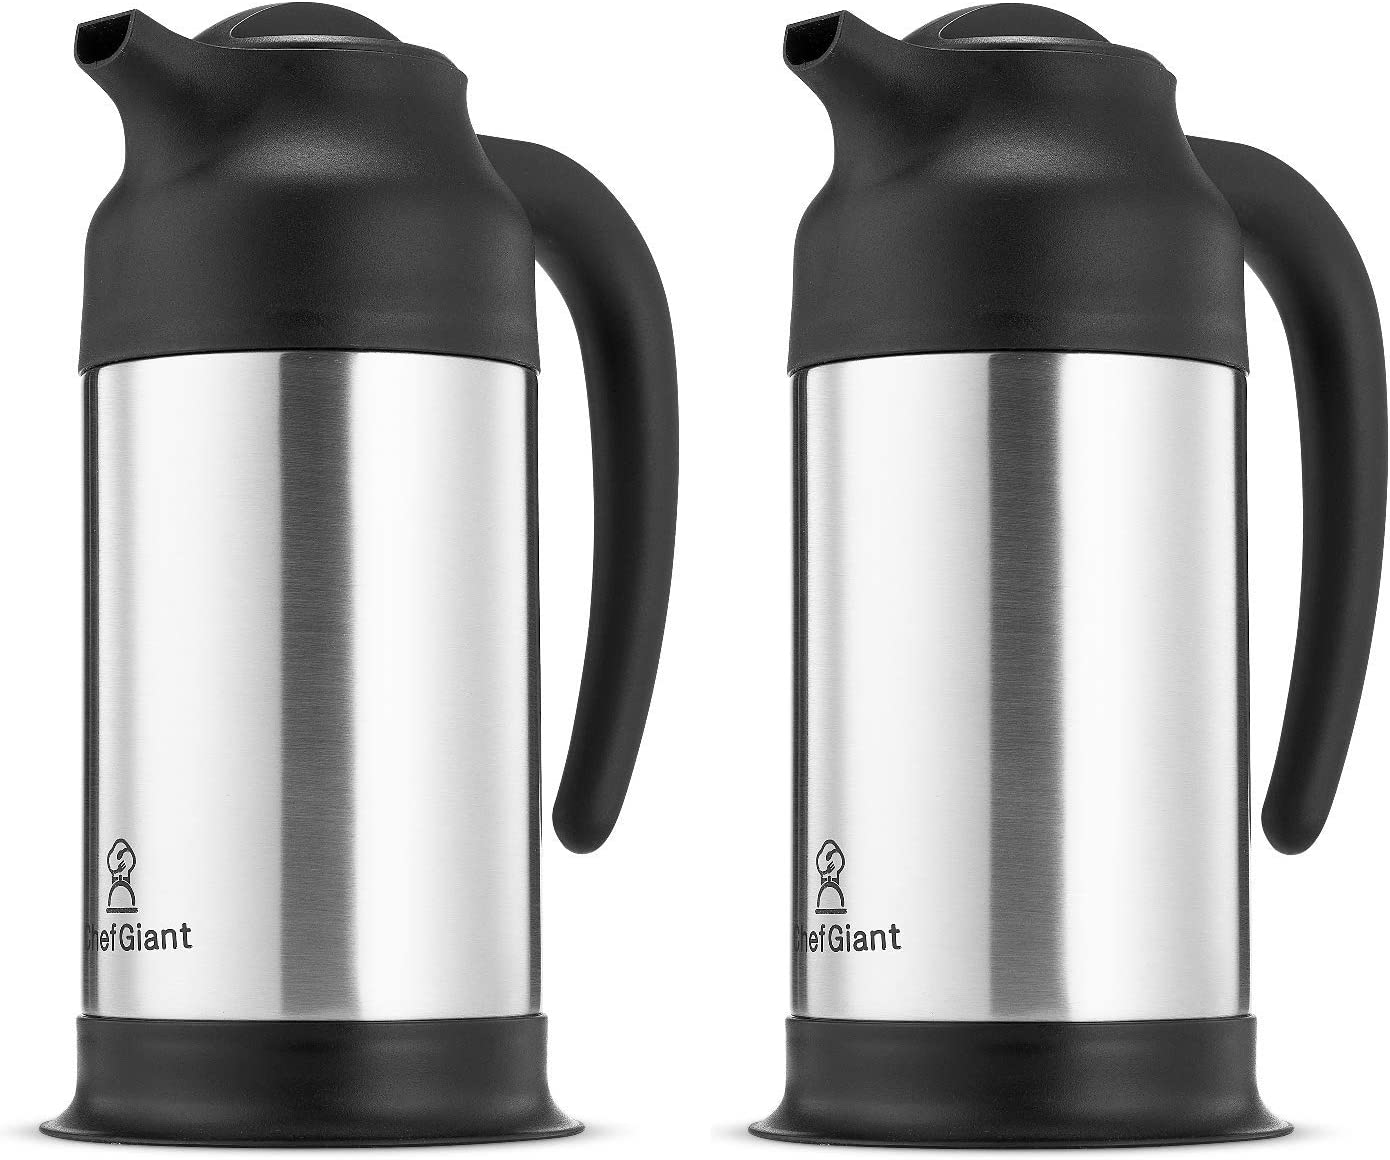 Stainless Steel Thermal Coffee Carafe Thermos|Insulated Hot & Cold Beverage Pitcher Dispenser w/ Milk Server |24 OZ. 3 CUP Small Design for Easy Handle & Travel |Twin Pack